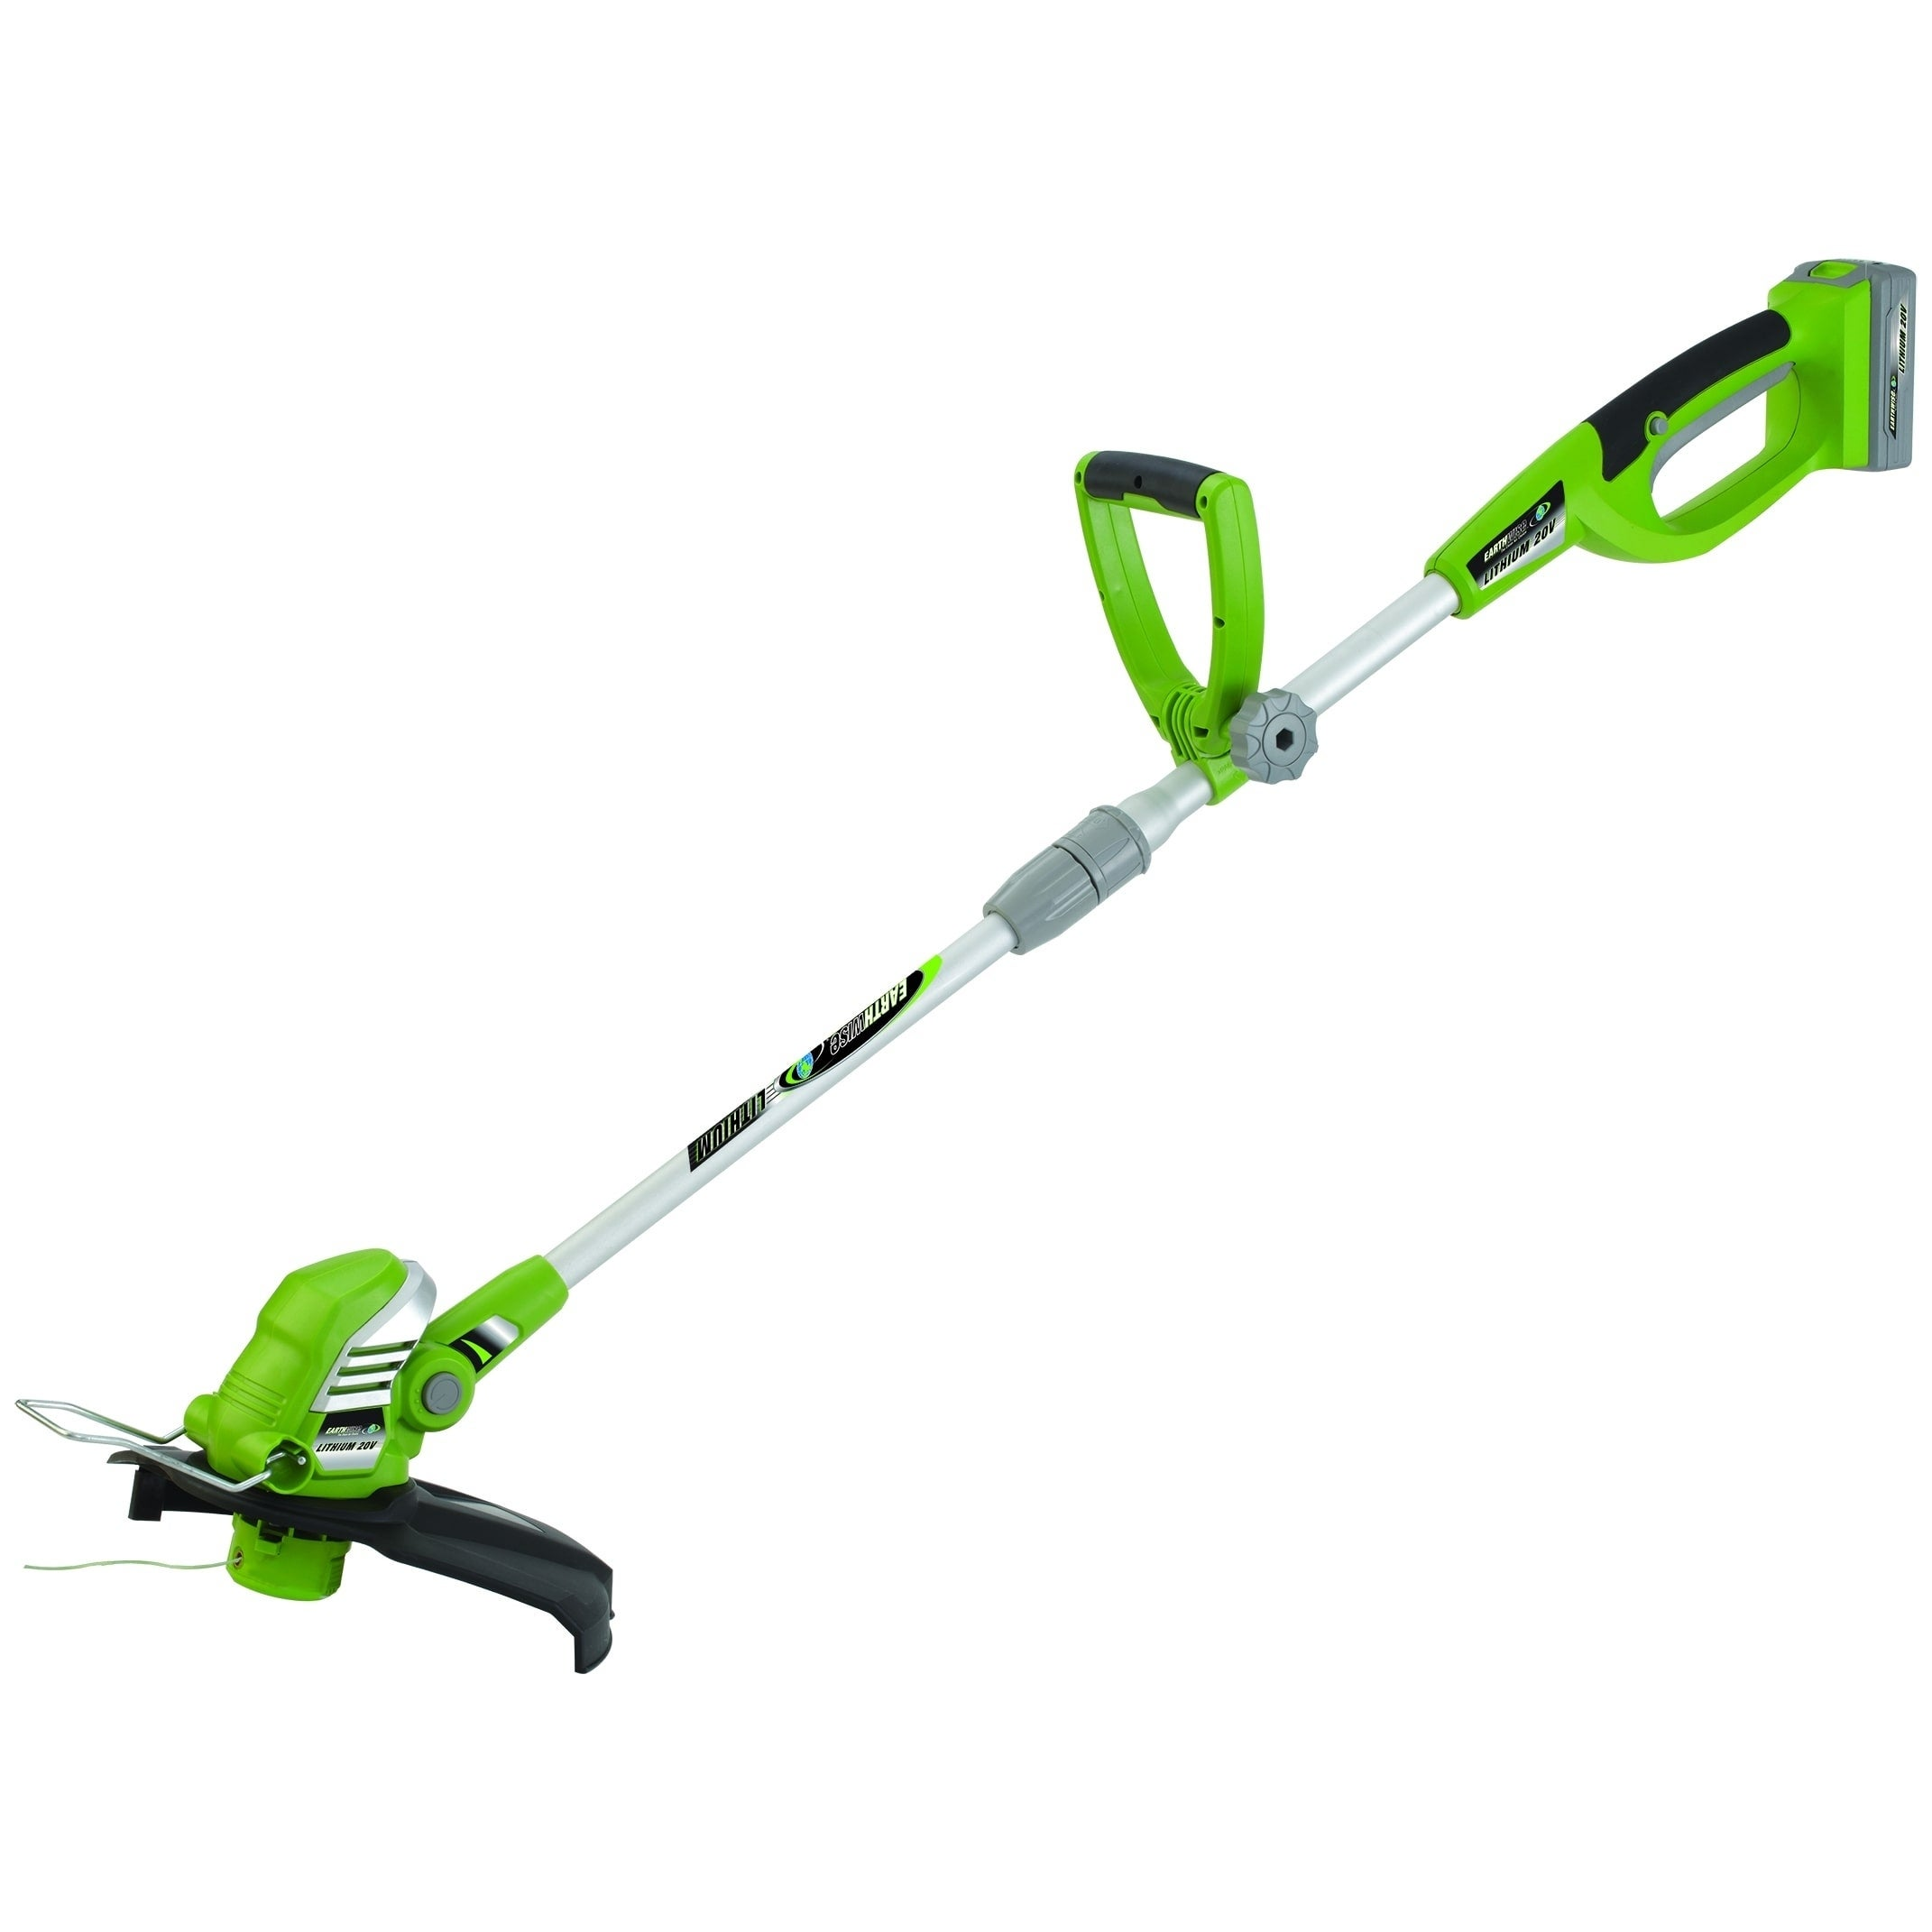 Esselte Cordless 20-volt Lithium Ion 12-inch Grass String...